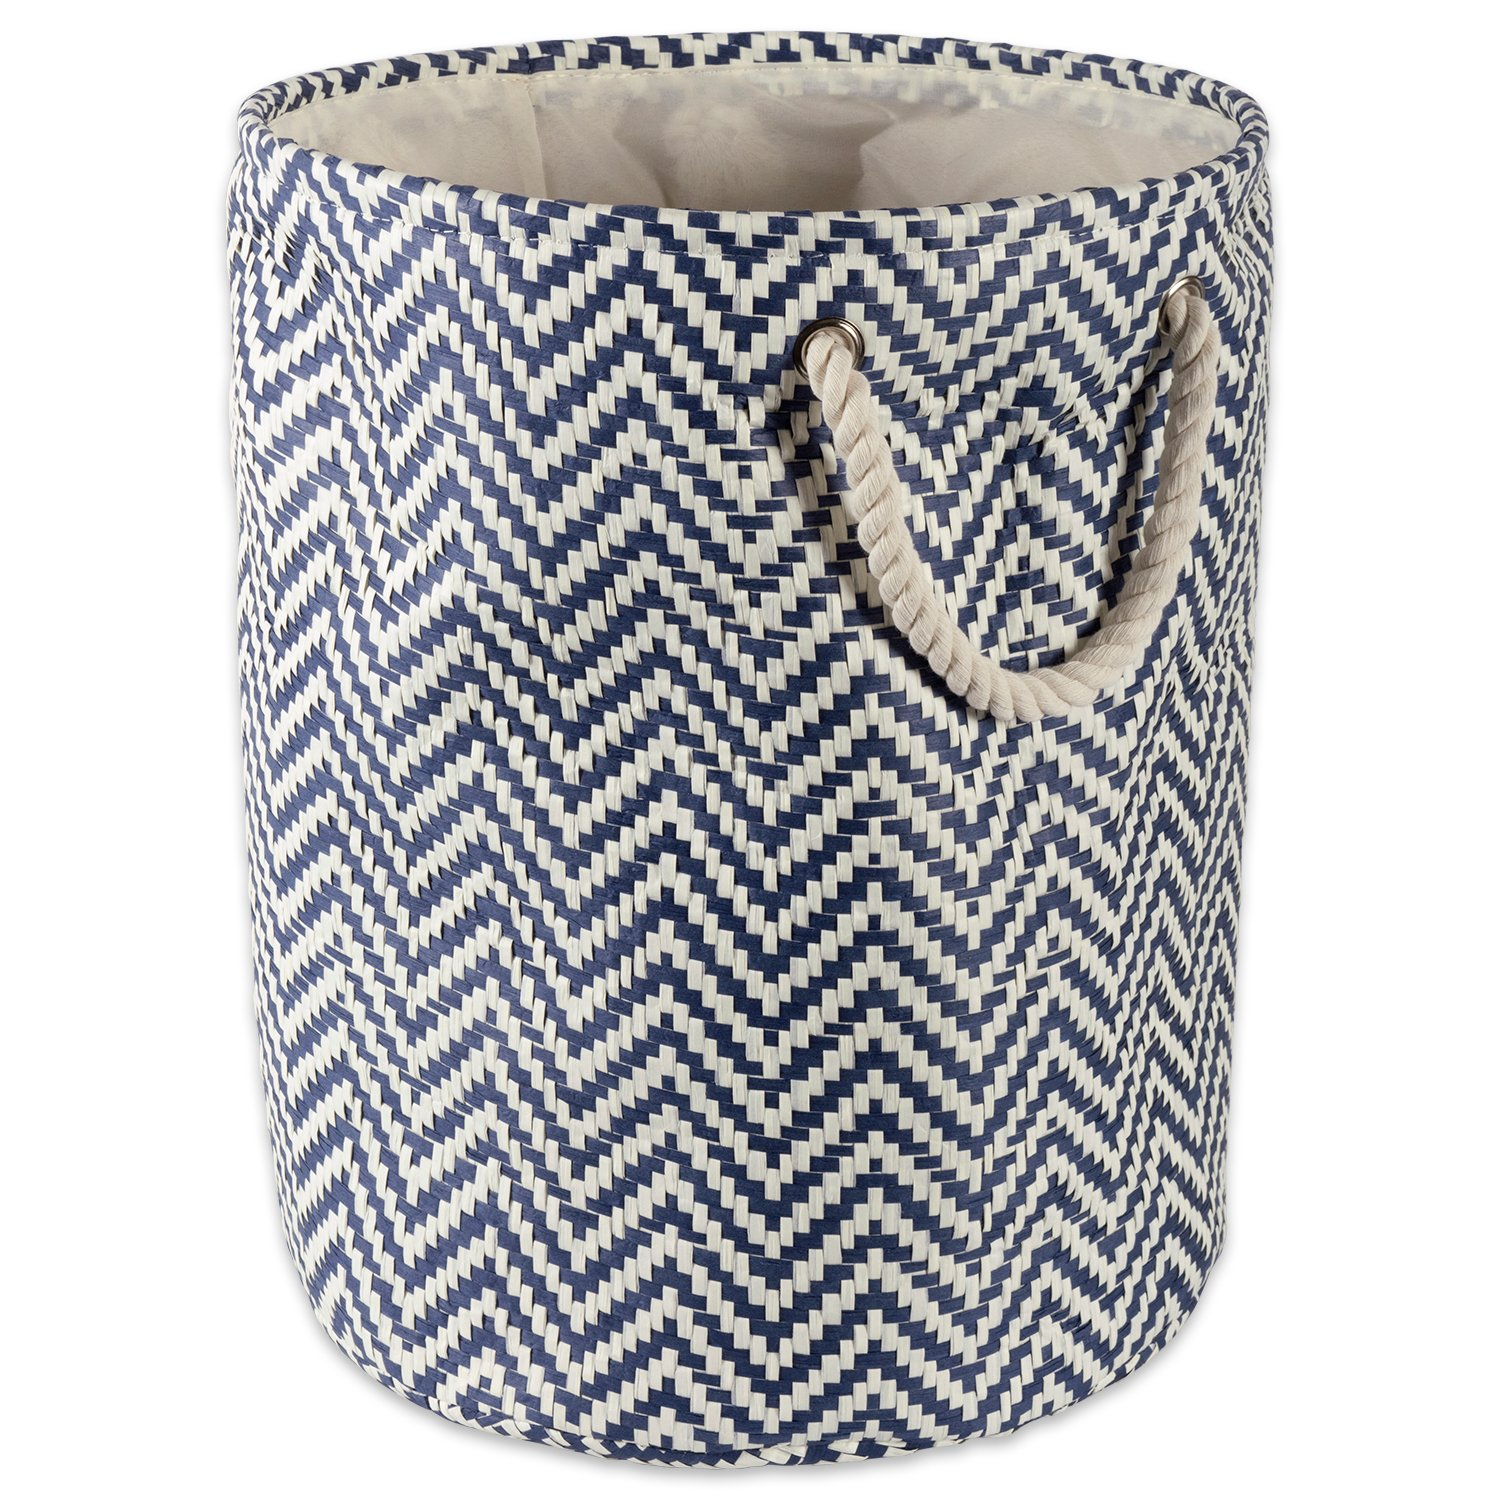 DII Woven Paper Basket or Bin, Collapsible & Convenient Organization & Storage Solution for Your Home (Large Round - 15x20) - Nautical Blue Chevron